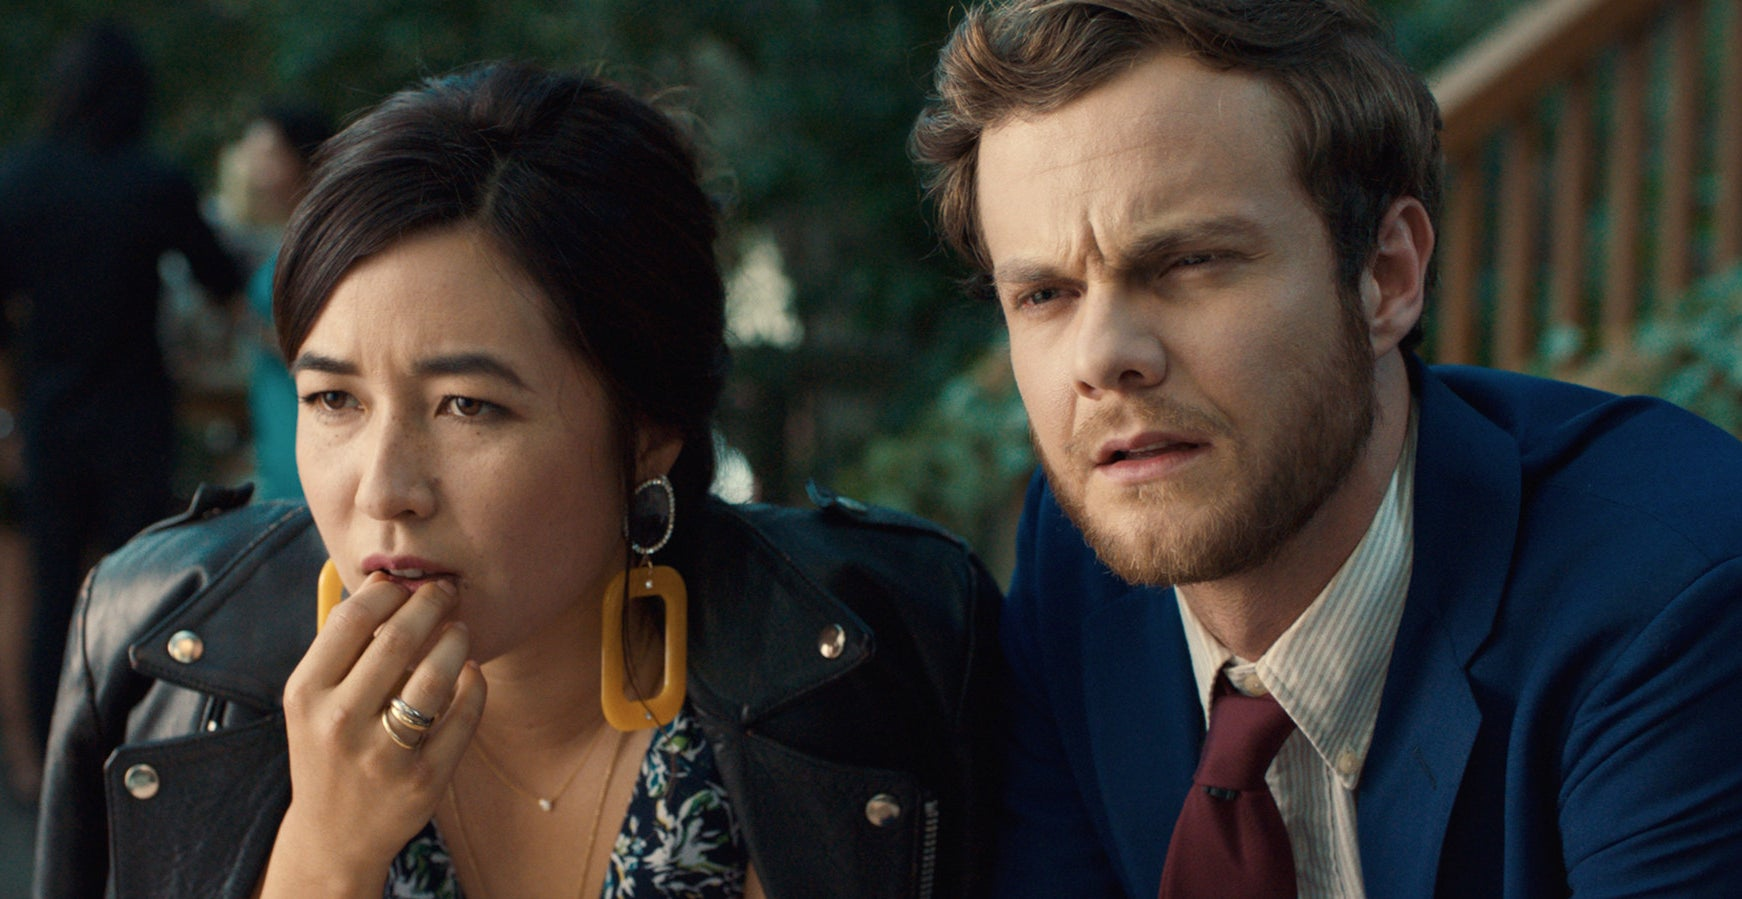 Maya Erskine and Jack Quaid looking serious while sitting down at an event